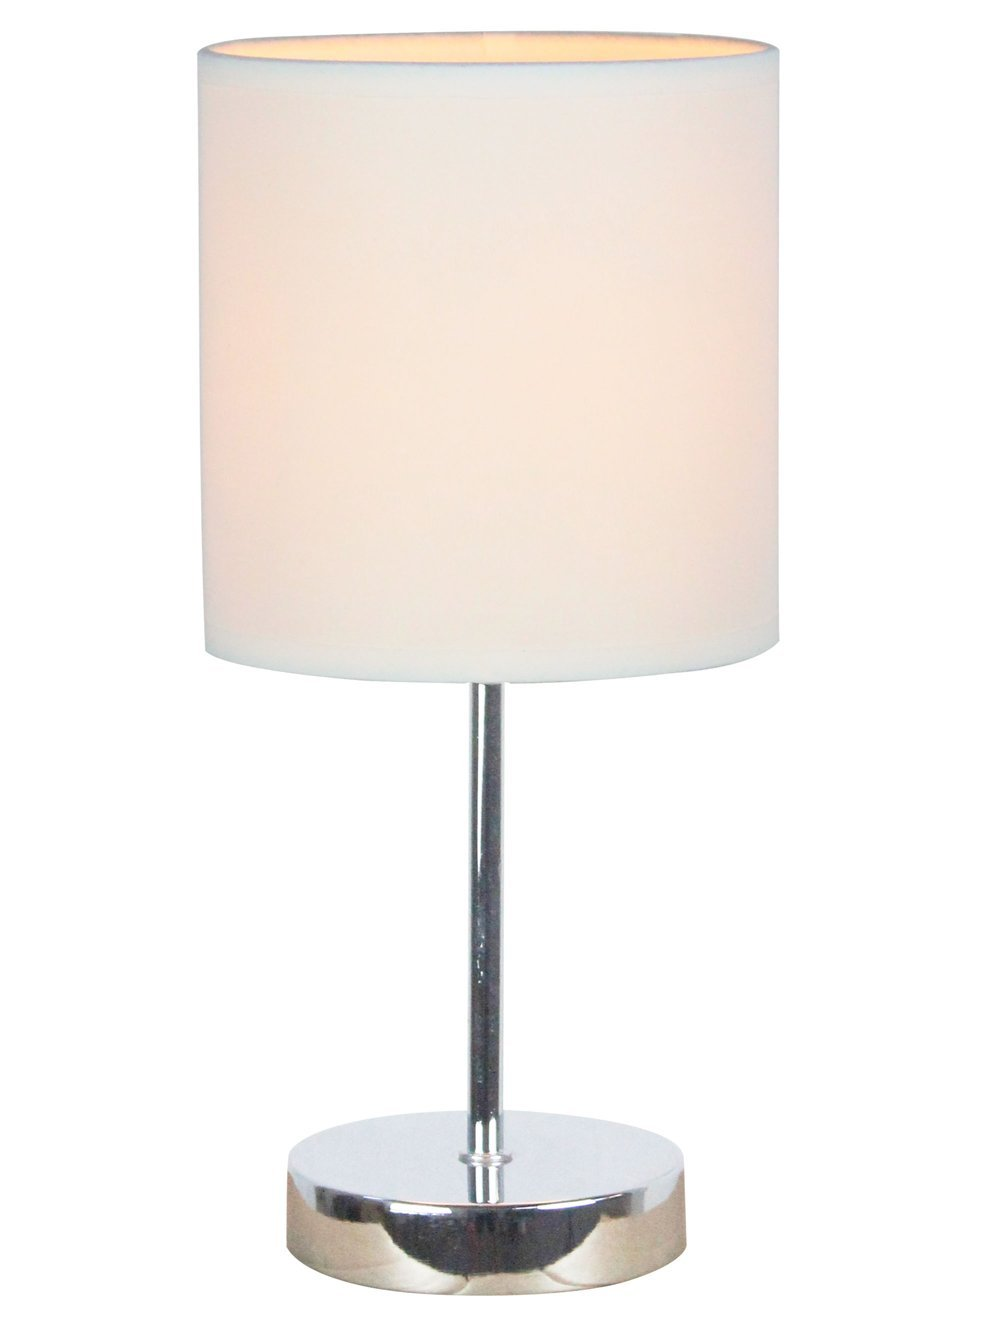 Amazon white floor lamps lamps shades tools - Simple Designs Lt2007 Wht Chrome Mini Basic Table Lamp With Fabric Shade White Amazon Com